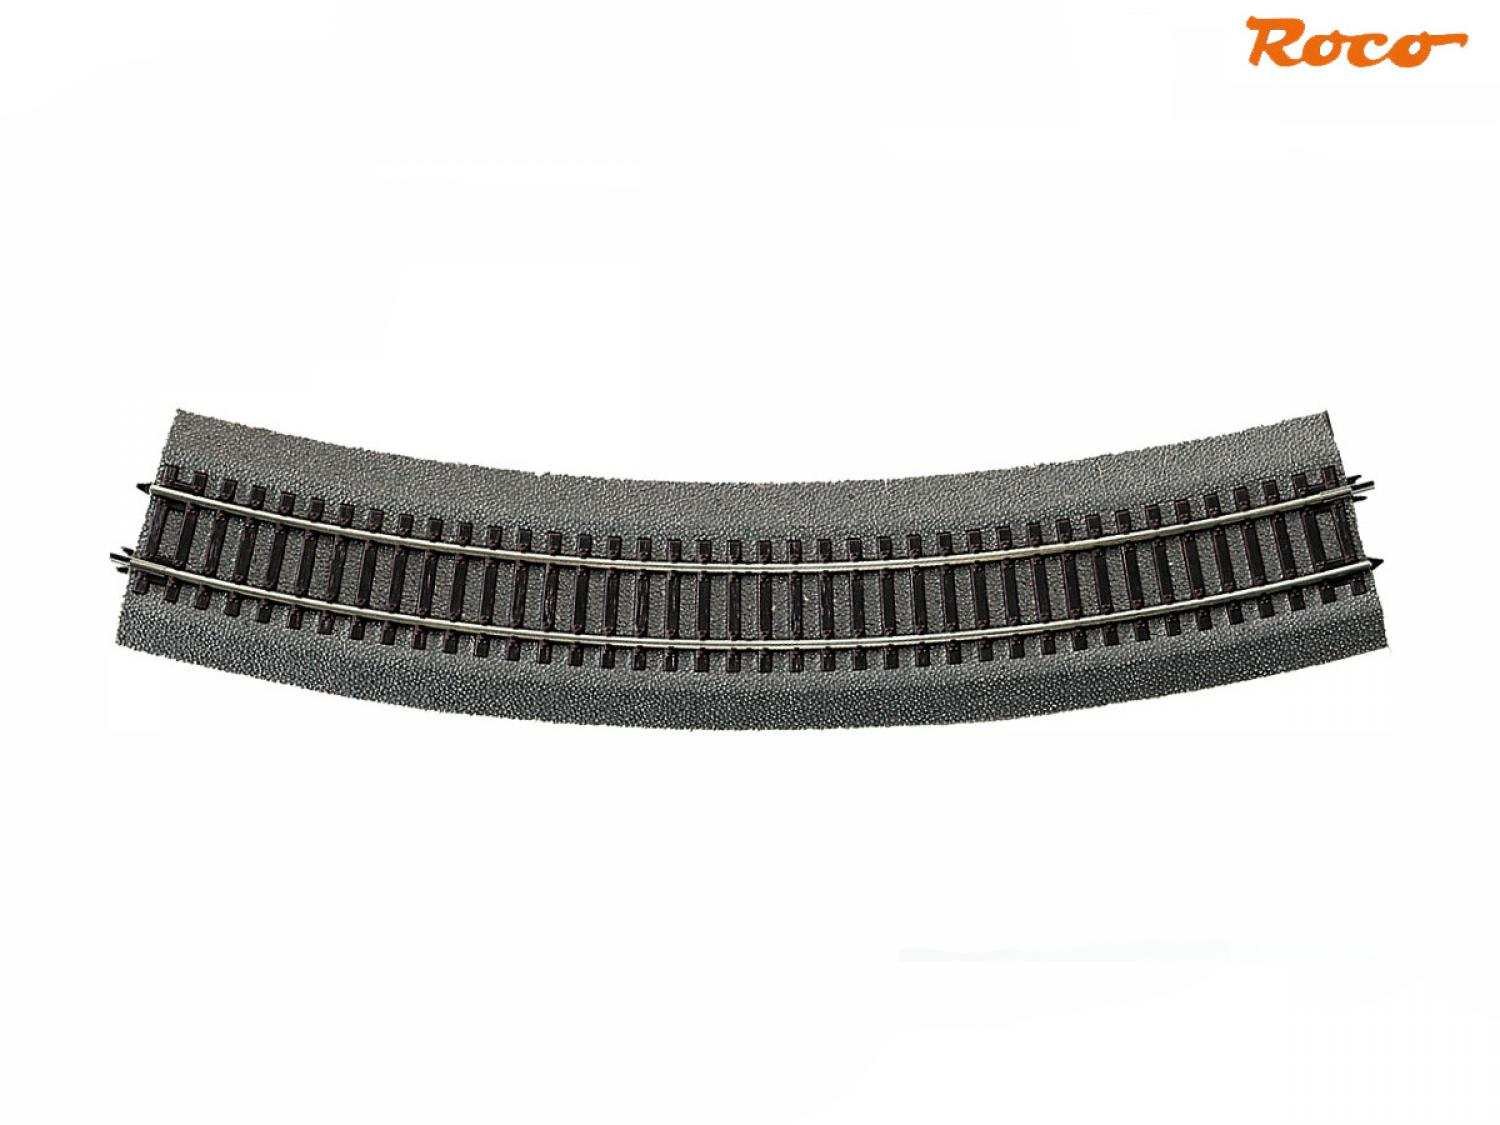 Roco 42525 Radius R5 542.8mm     VP6